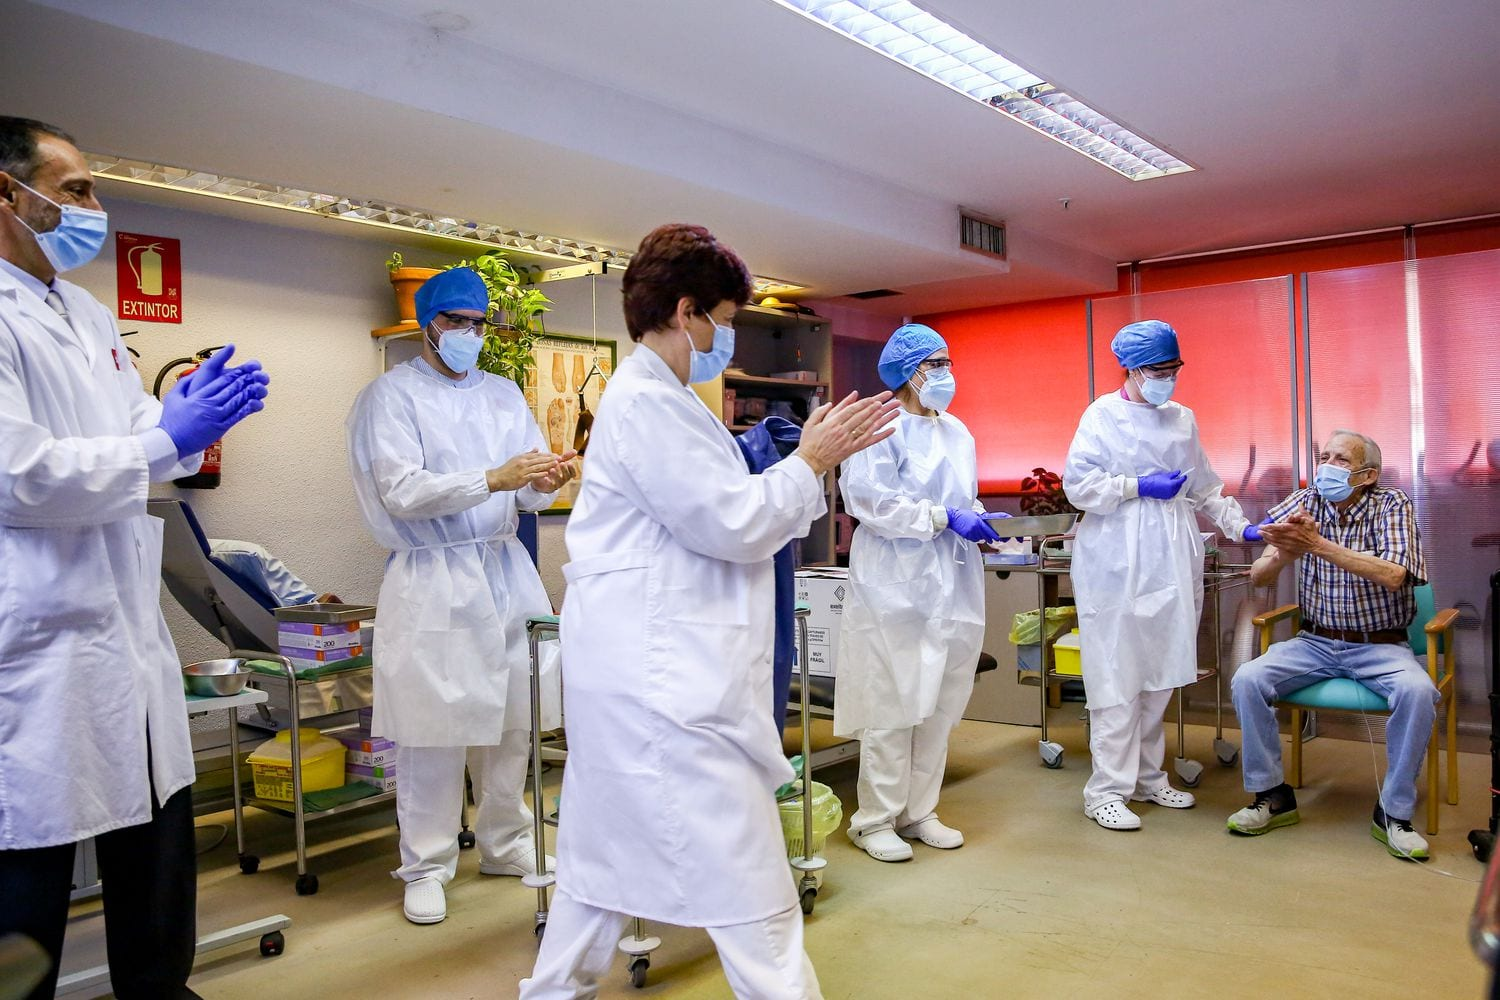 First man to receive the COVID-19 vaccine in Spain